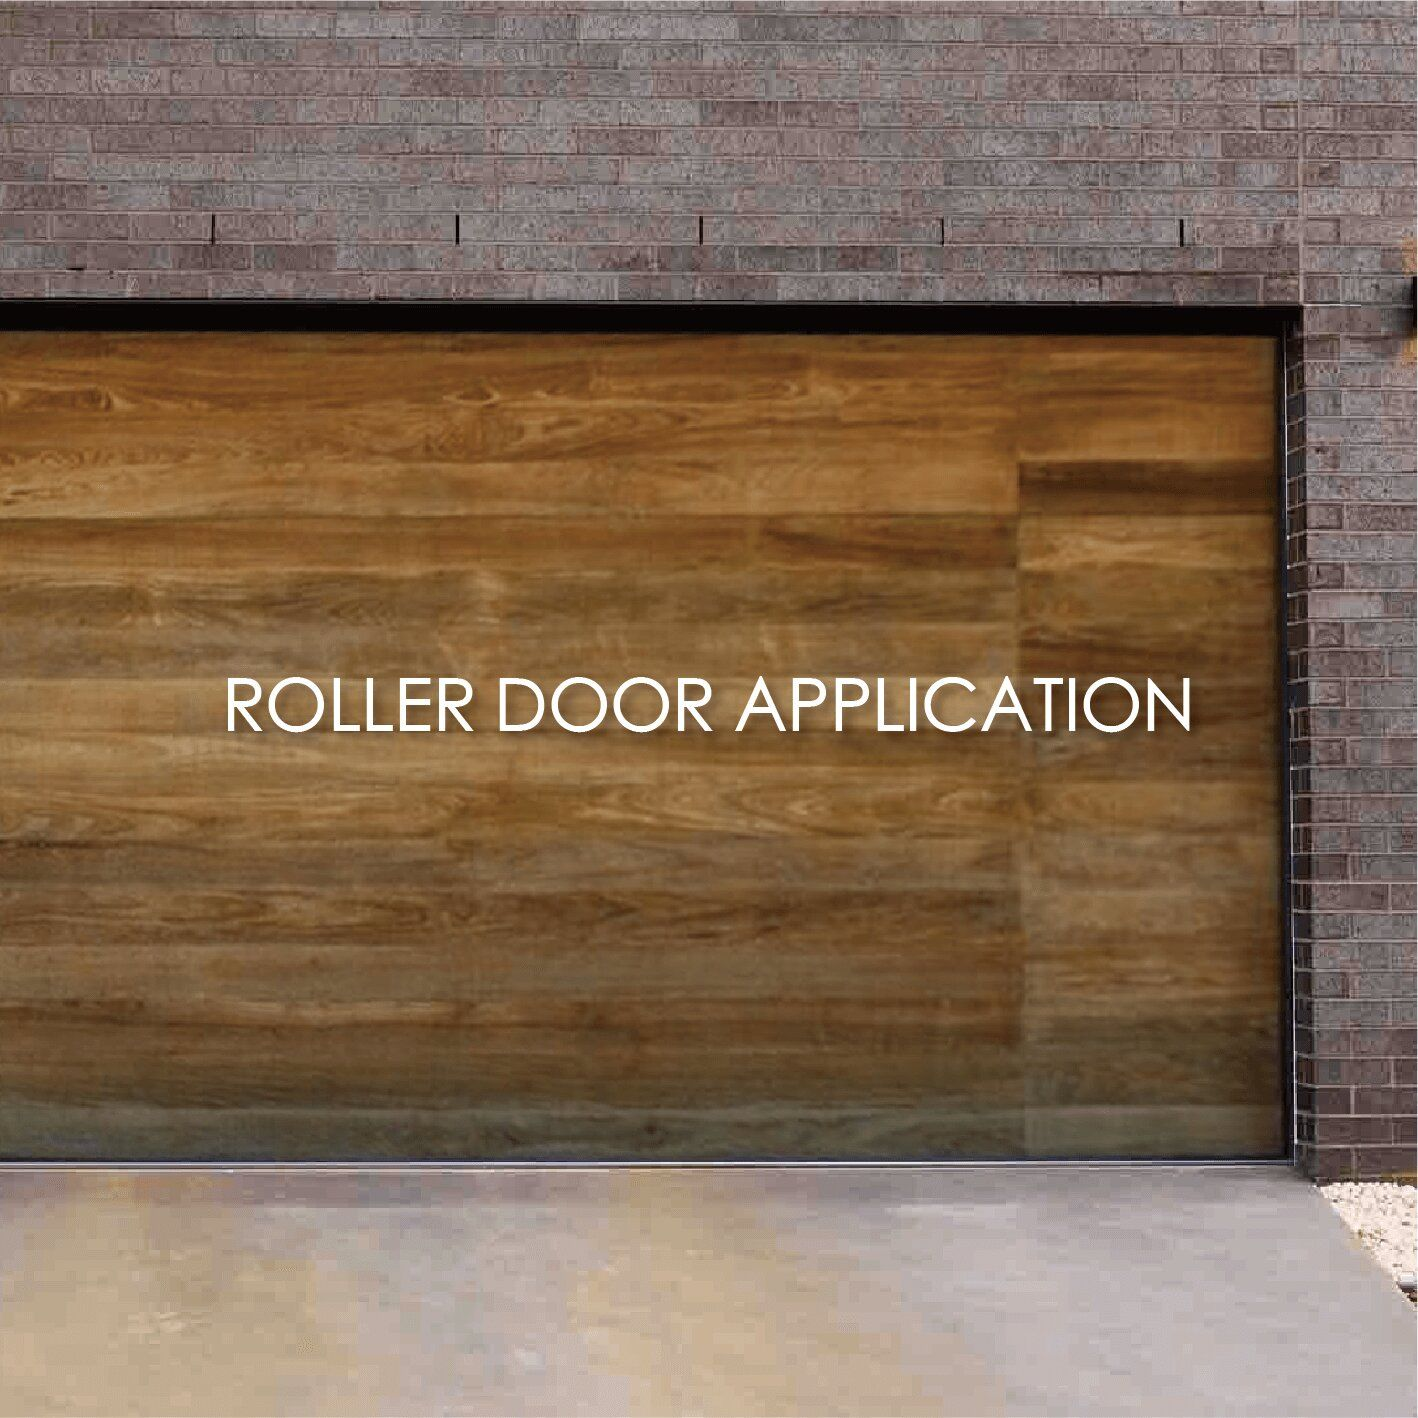 Wood grain coated metal decorative garage roll door can increase aesthetics and durability